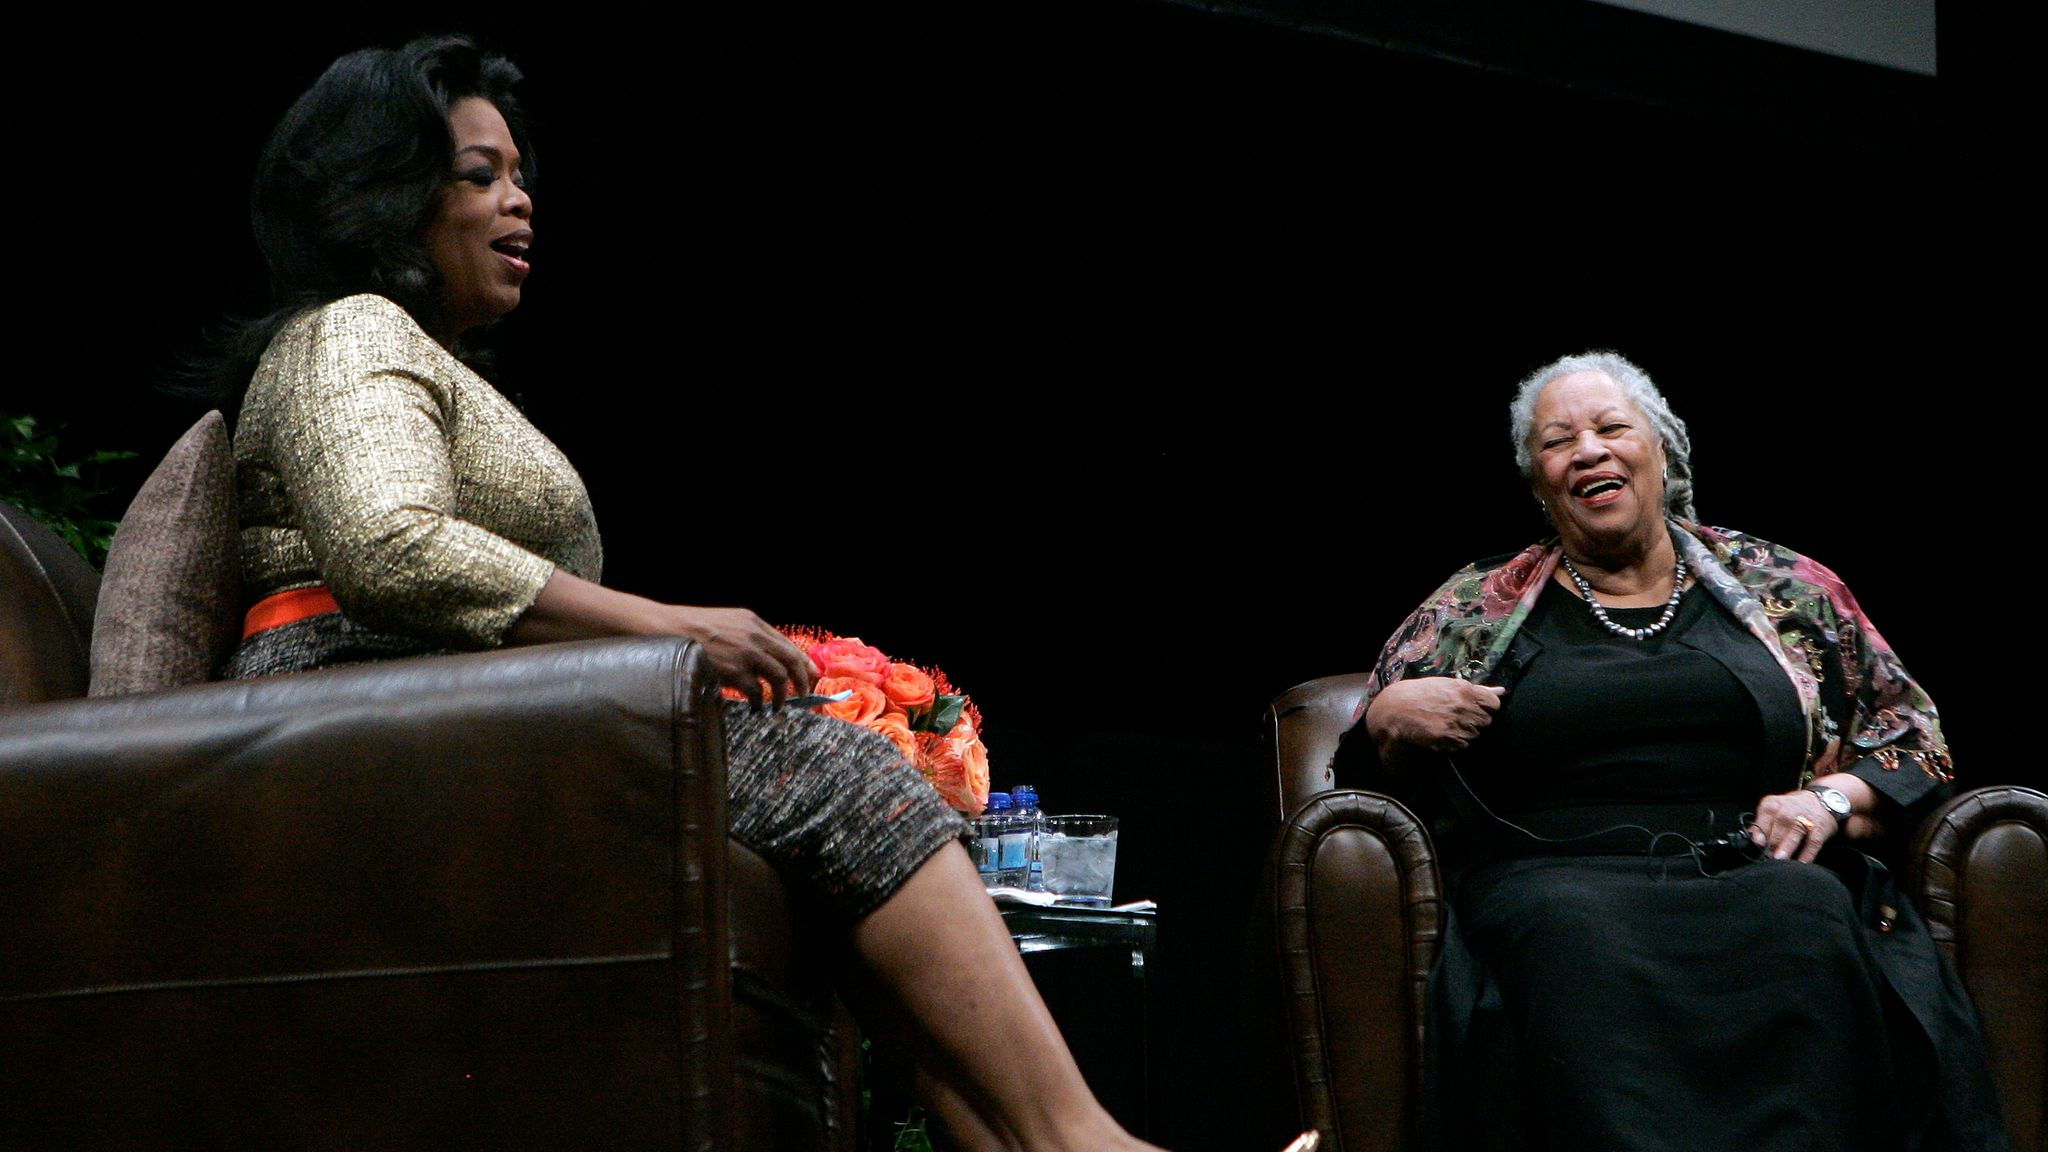 CHICAGO - OCTOBER 20: Nobel and Pulitzer Prize winning author Toni Morrison (R) shares a laugh with talk show queen Oprah Winfrey during the annual Carl Sandburg Literary Awards Dinner October 20, 2010, in Chicago, Illinois. The Carl Sandburg Literary Award is presented each year to an author whose significant body of work has enhanced the public's awareness of the written word. Photo by Frank Polich/Getty Images)